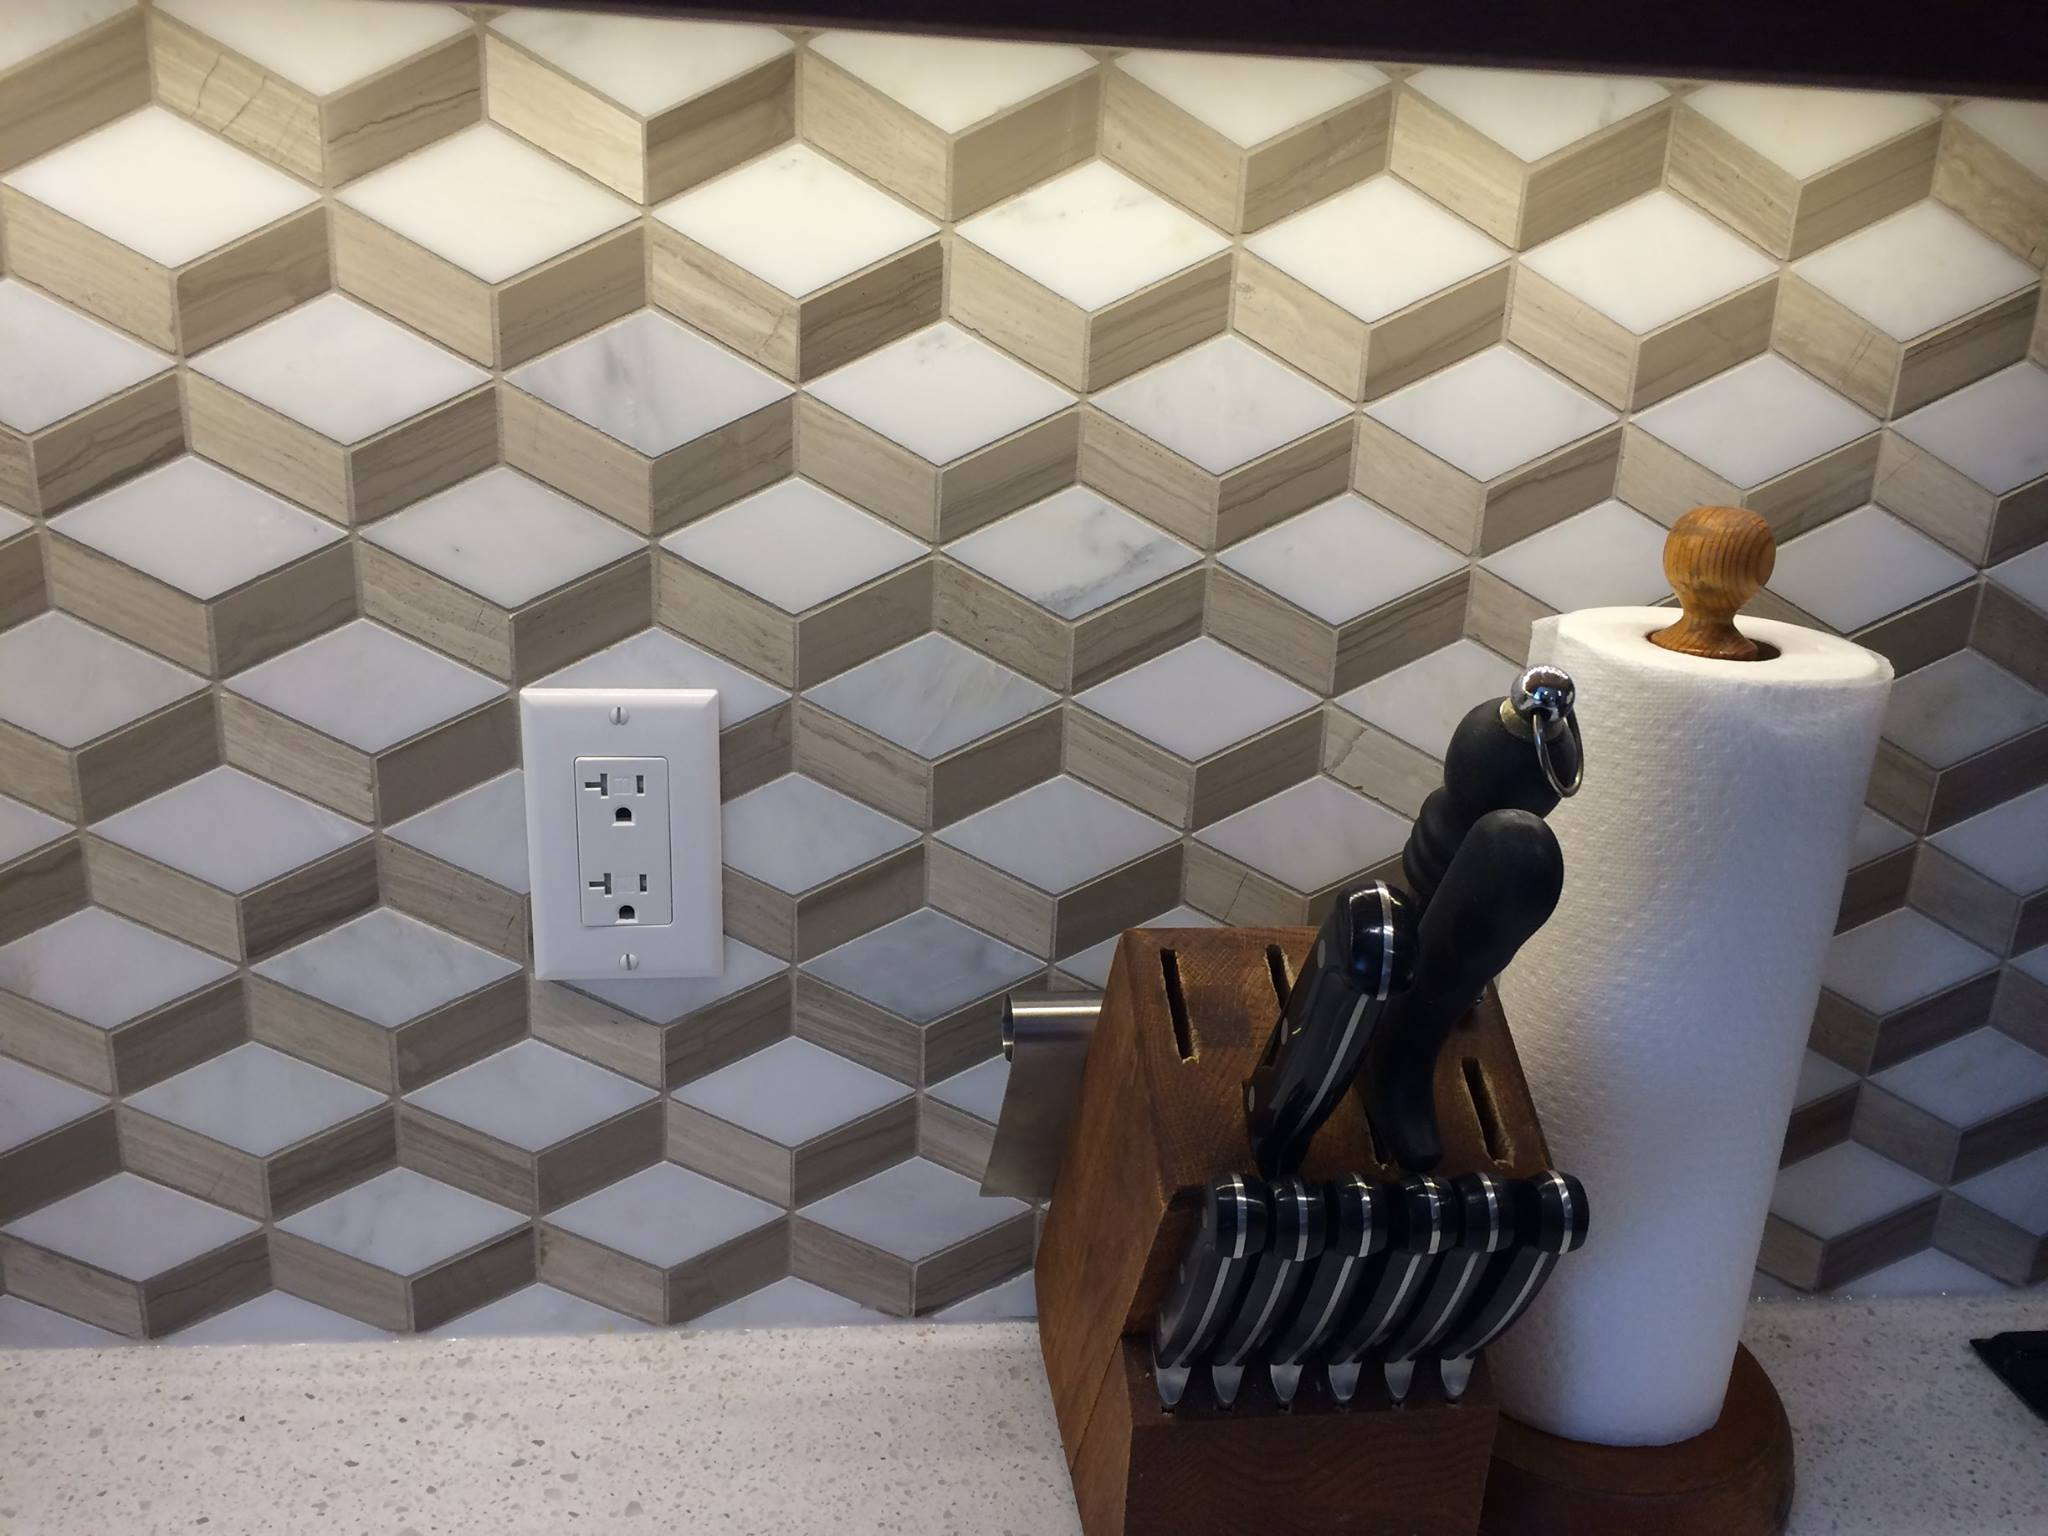 To give the kitchen a bit of pizzazz, the backsplash was done in a tile that gave the impression of a three dimensional backsplash.